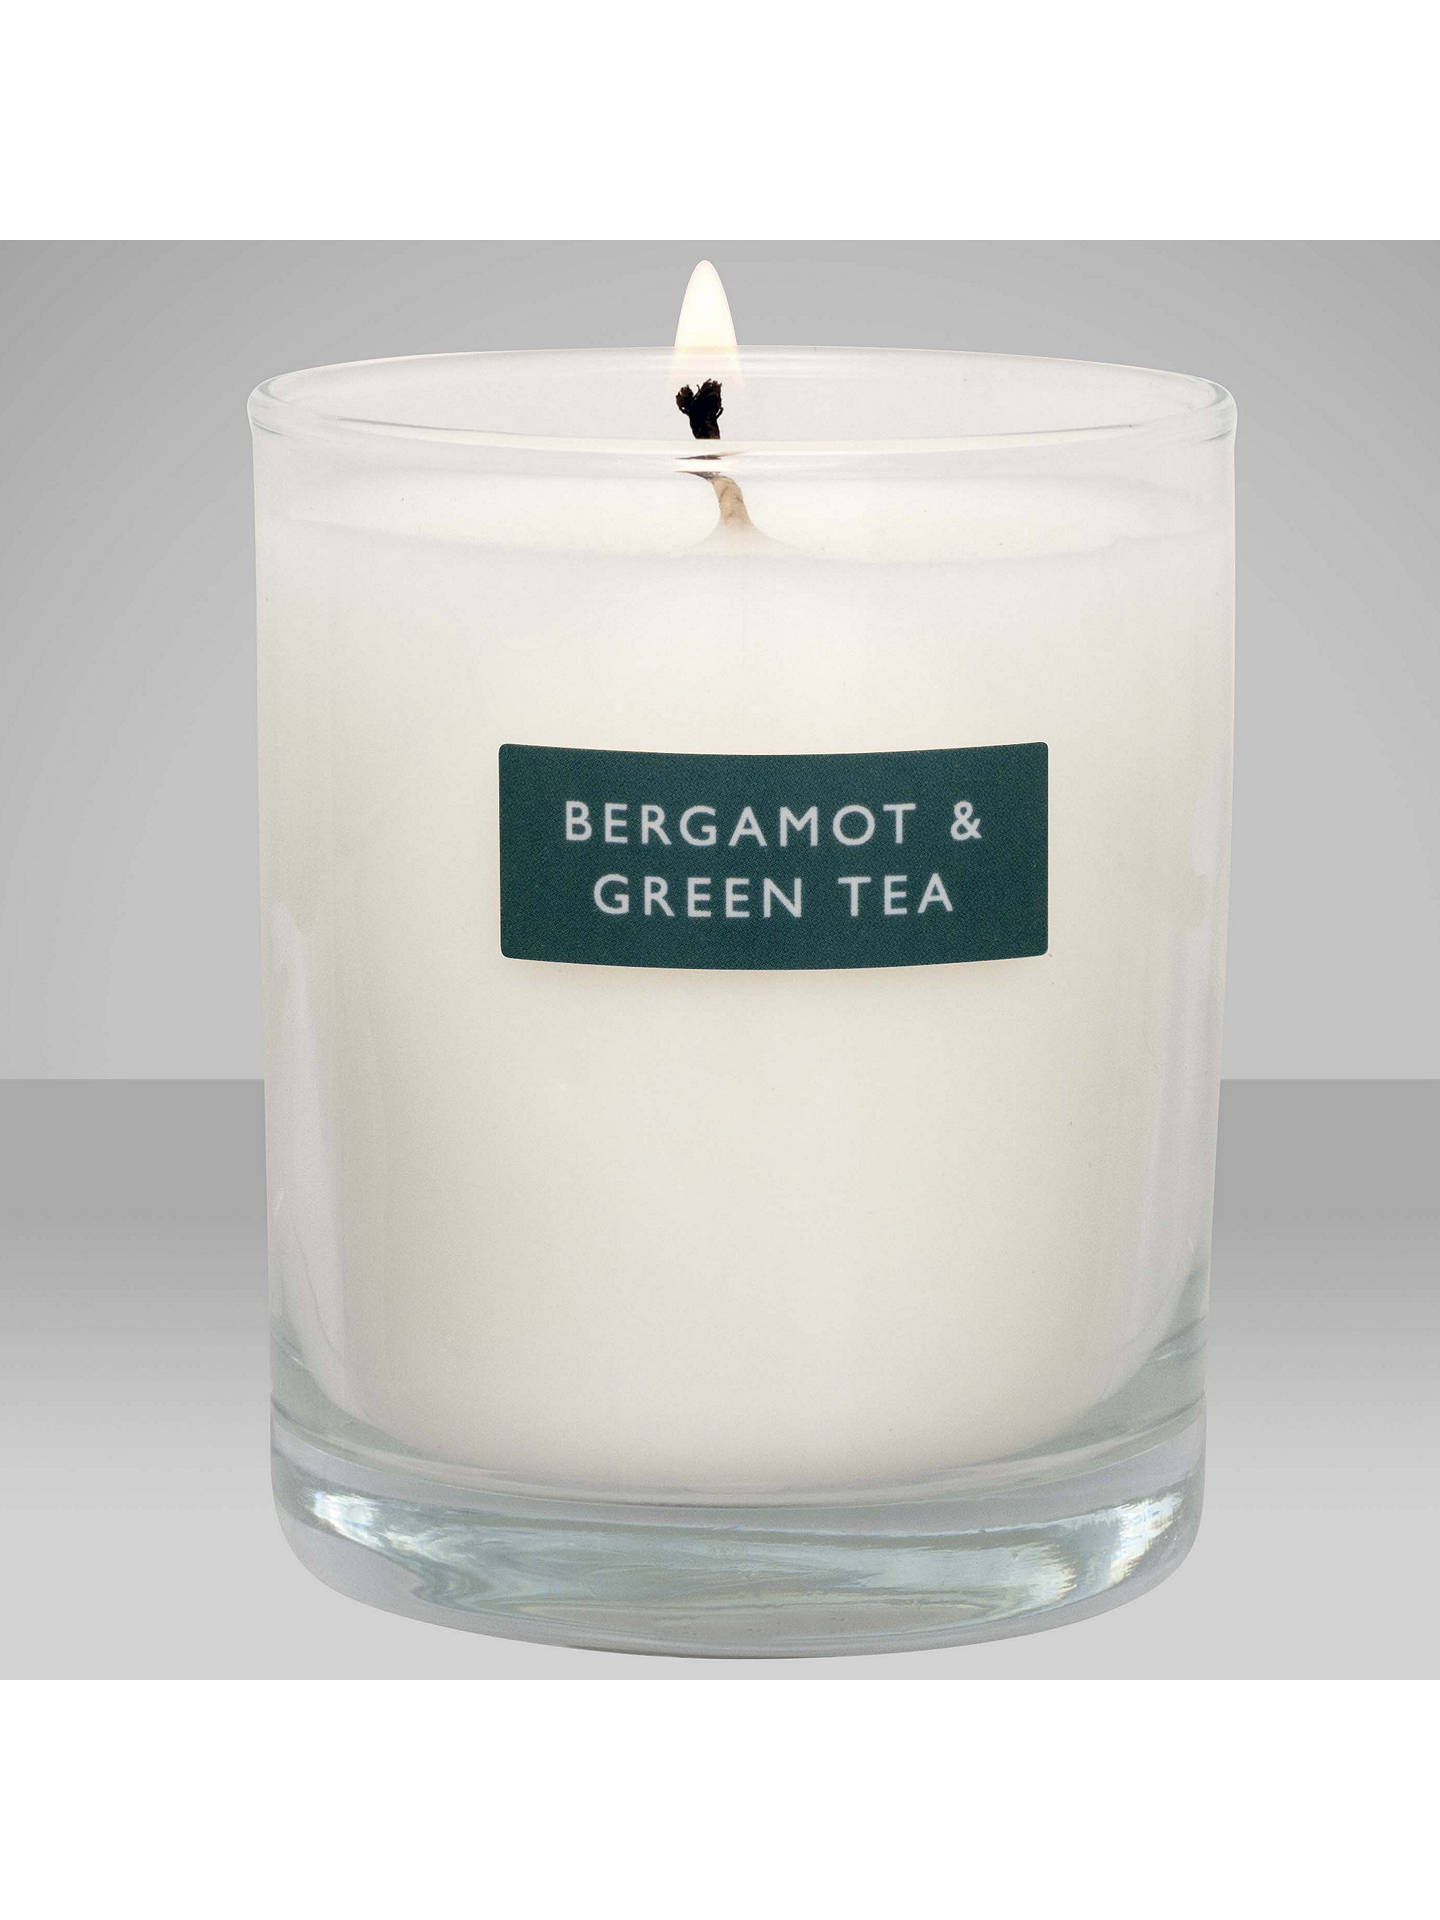 BuyJohn Lewis & Partners Bergamot & Green Tea Scented Candle, 180g Online at johnlewis.com